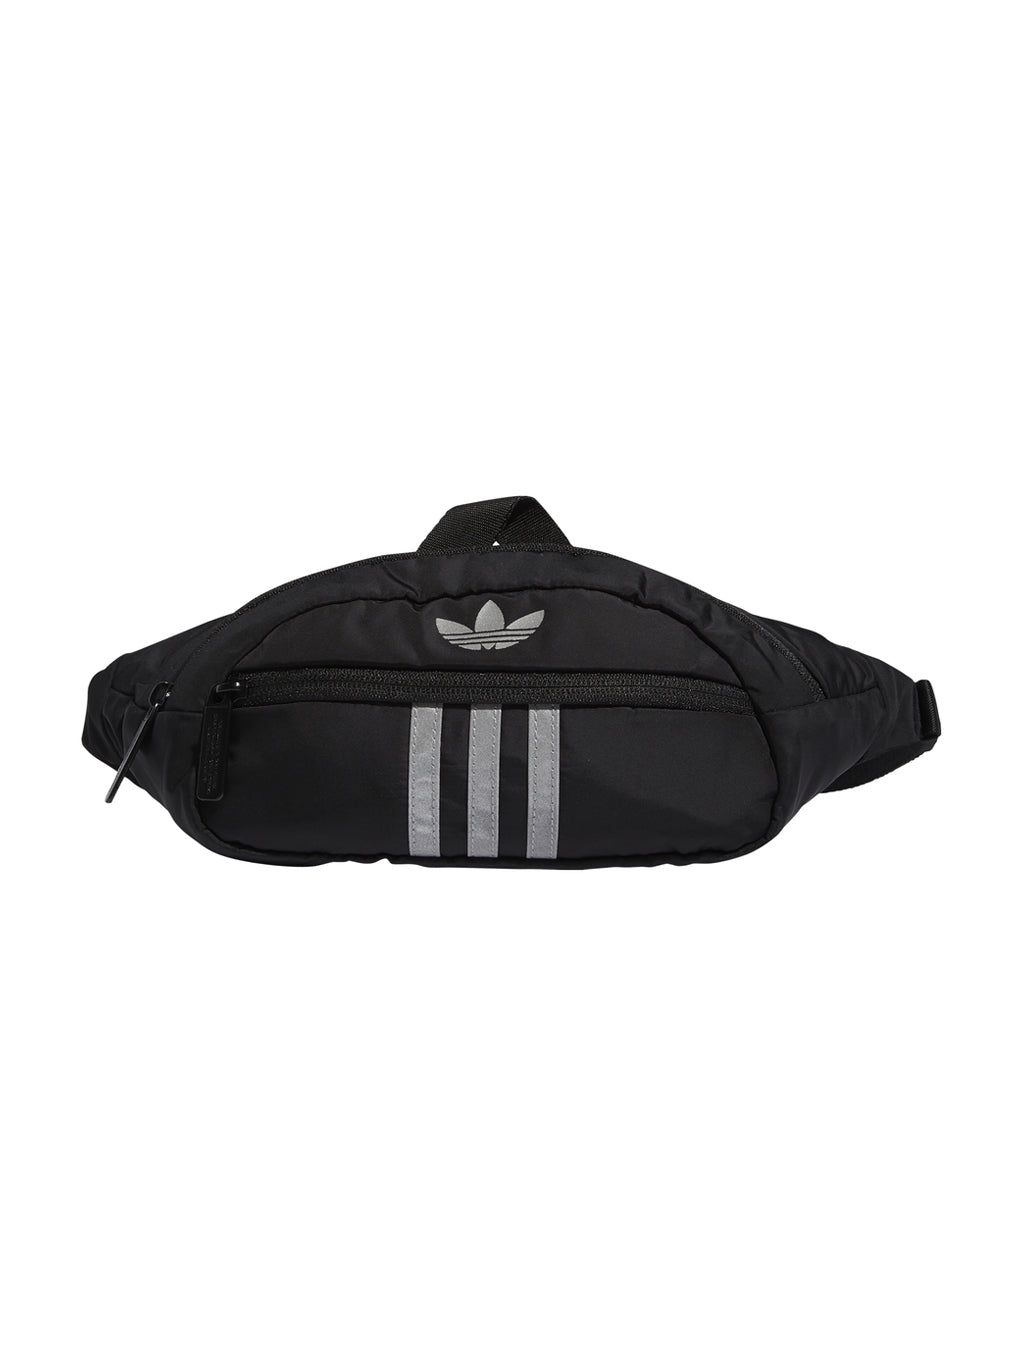 Black Reflective National 3-Stripes Waist Bag